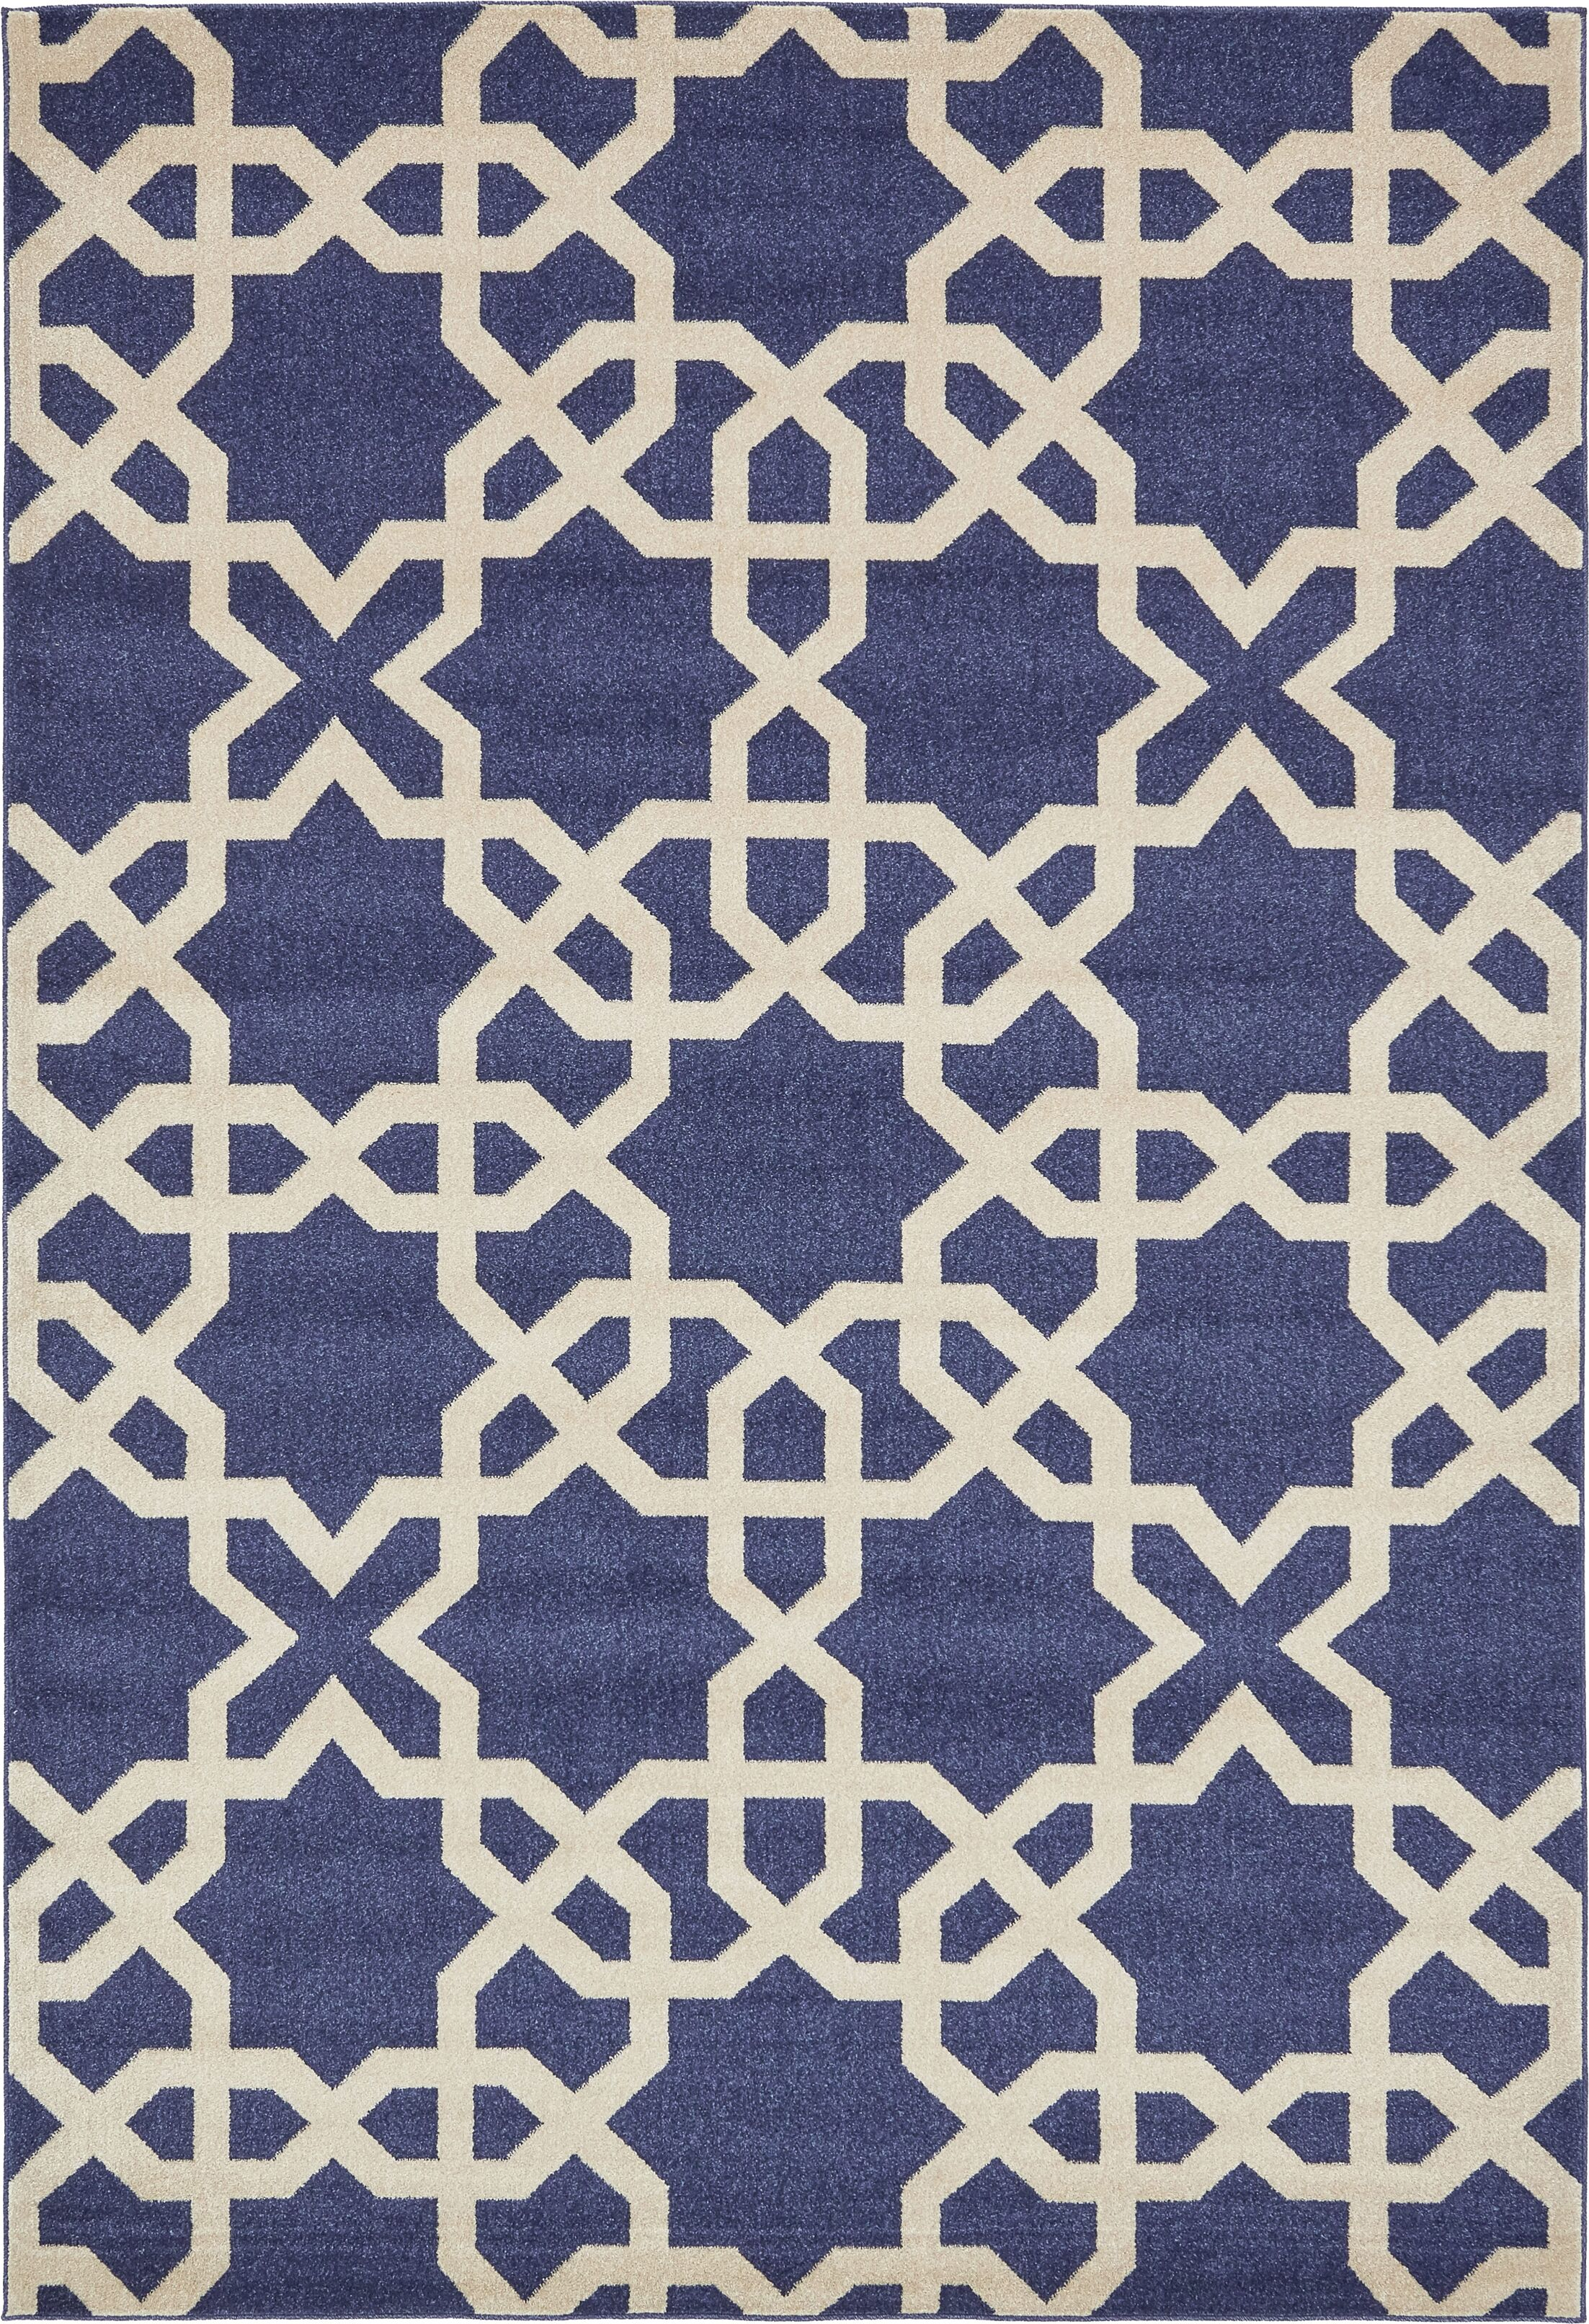 Moore Blue/Beige Area Rug Rug Size: Rectangle 7' x 10'